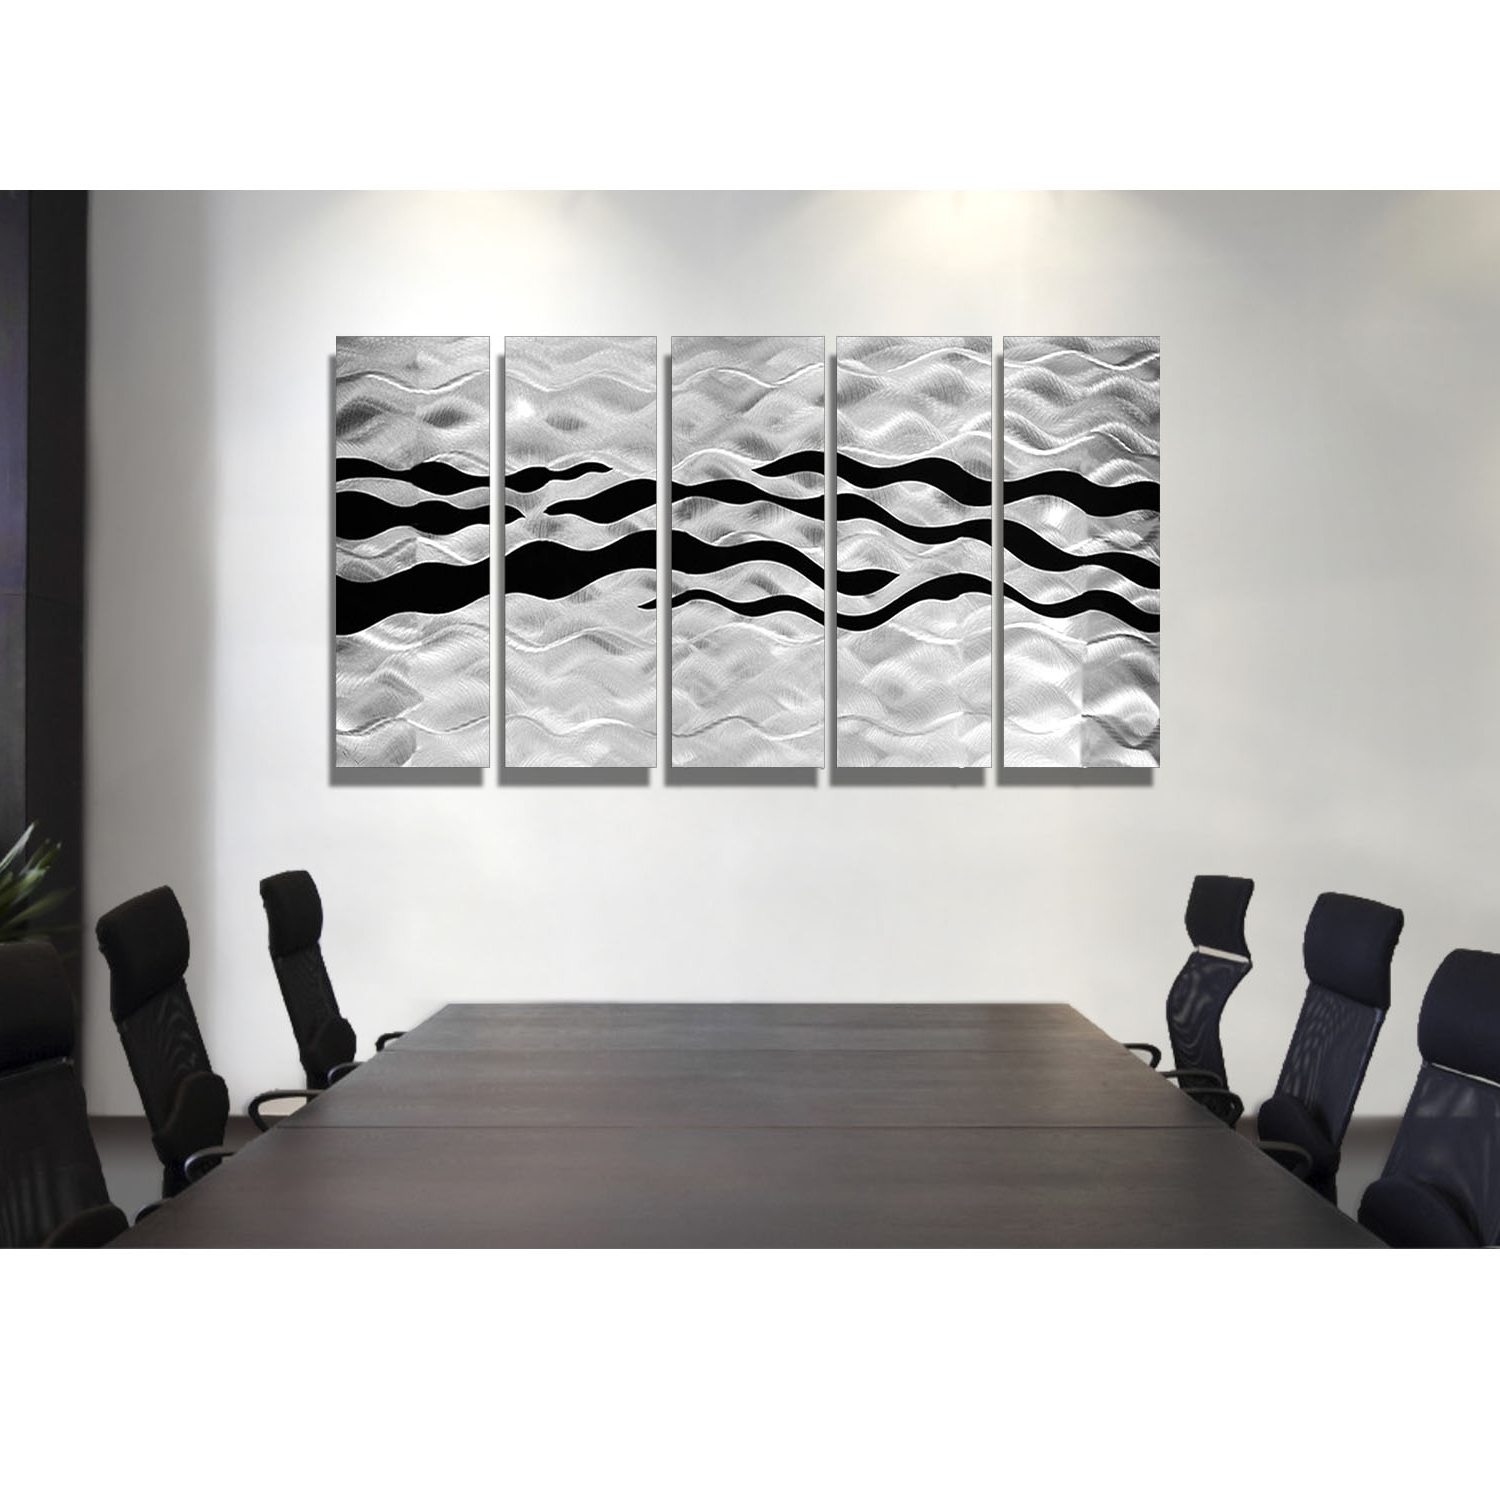 Onyx Oceana – Silver And Black Metal Wall Art – 5 Panel Wall Décor Within Well Known Black Metal Wall Art (View 17 of 20)